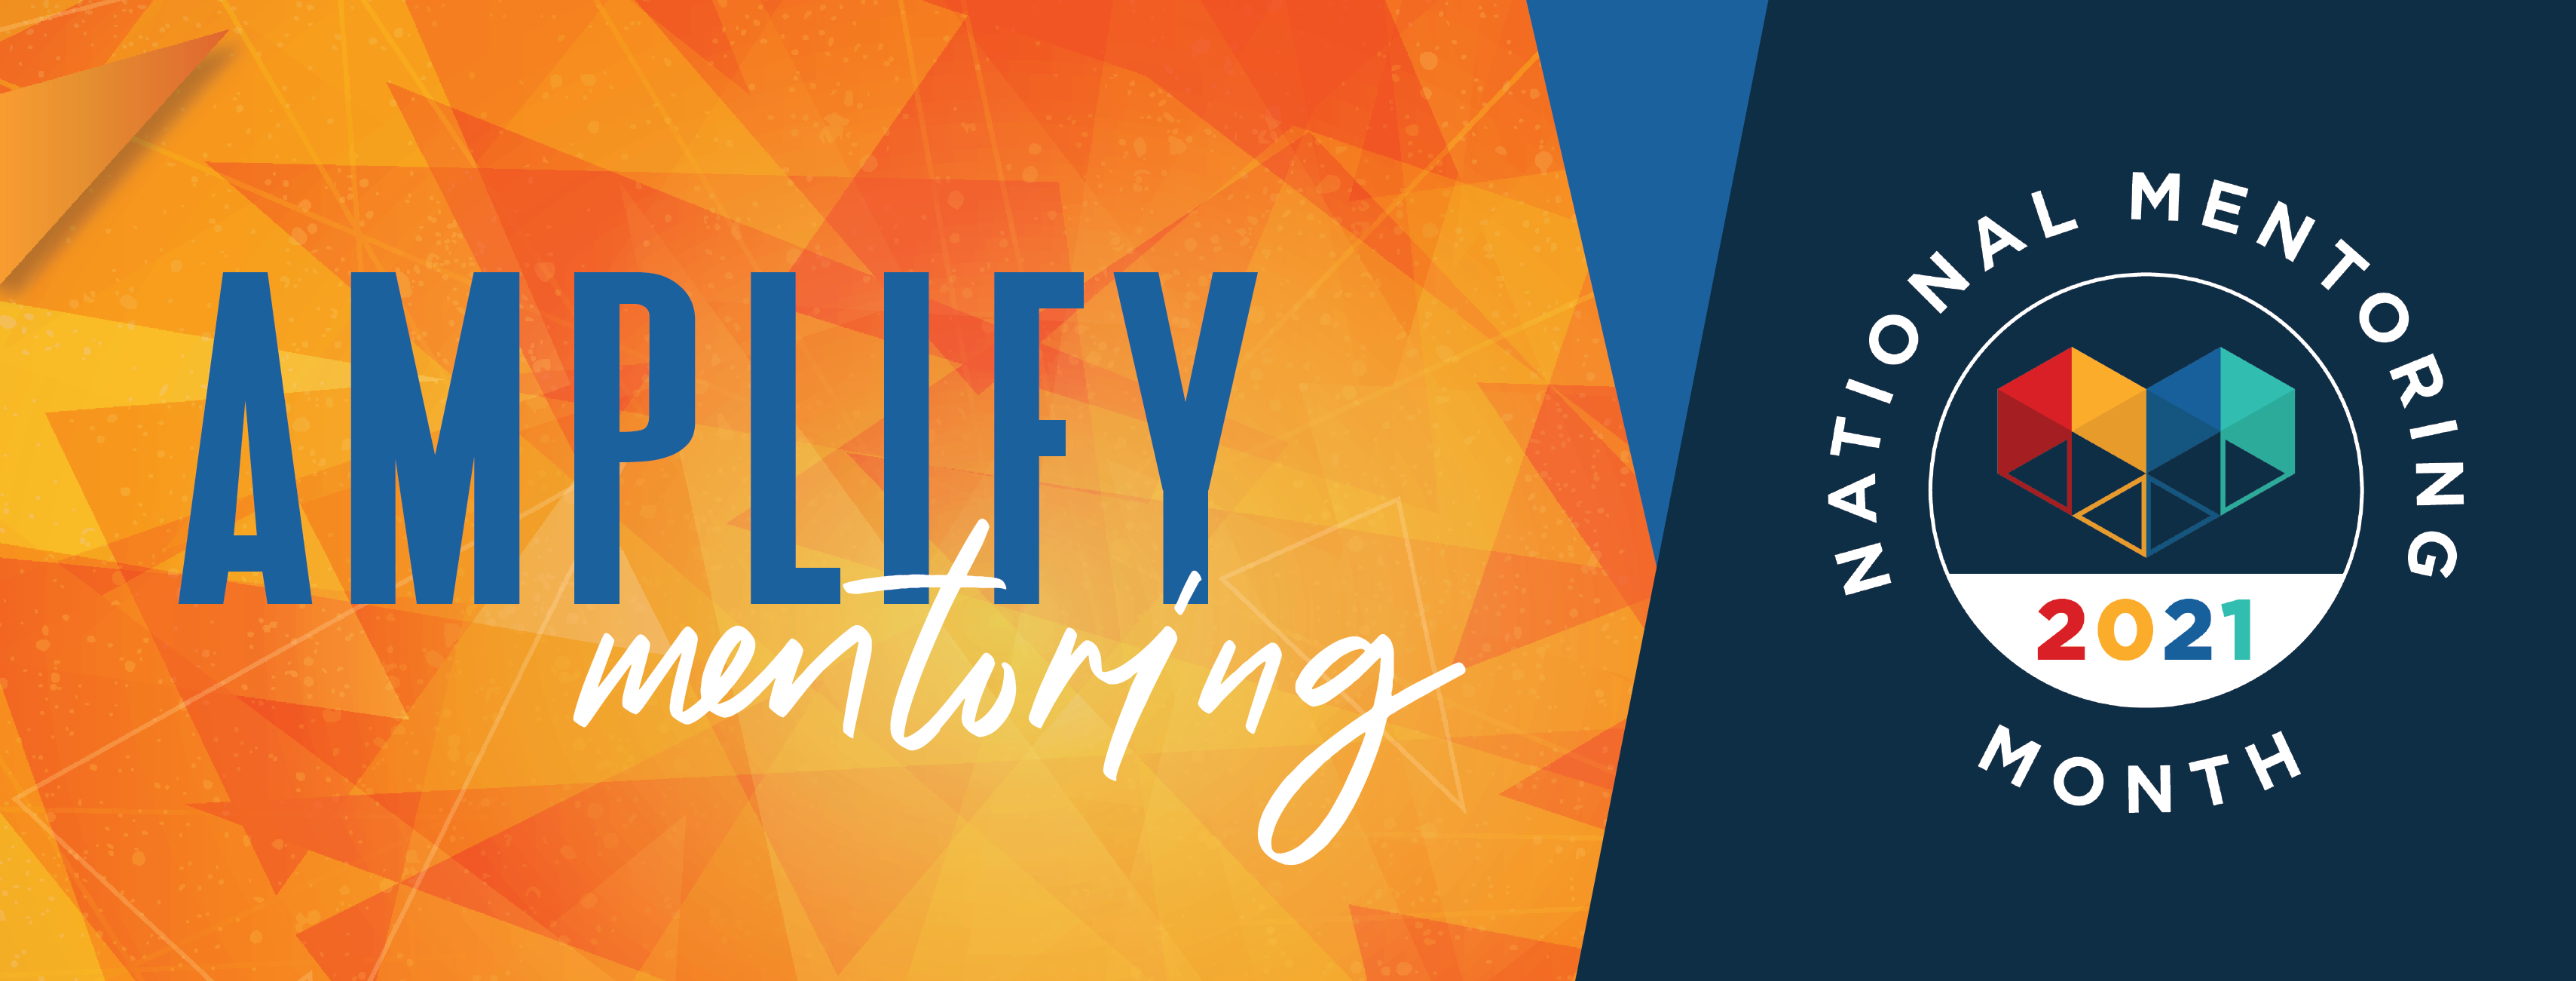 Amplify Mentoring | National Mentoring Month 2021